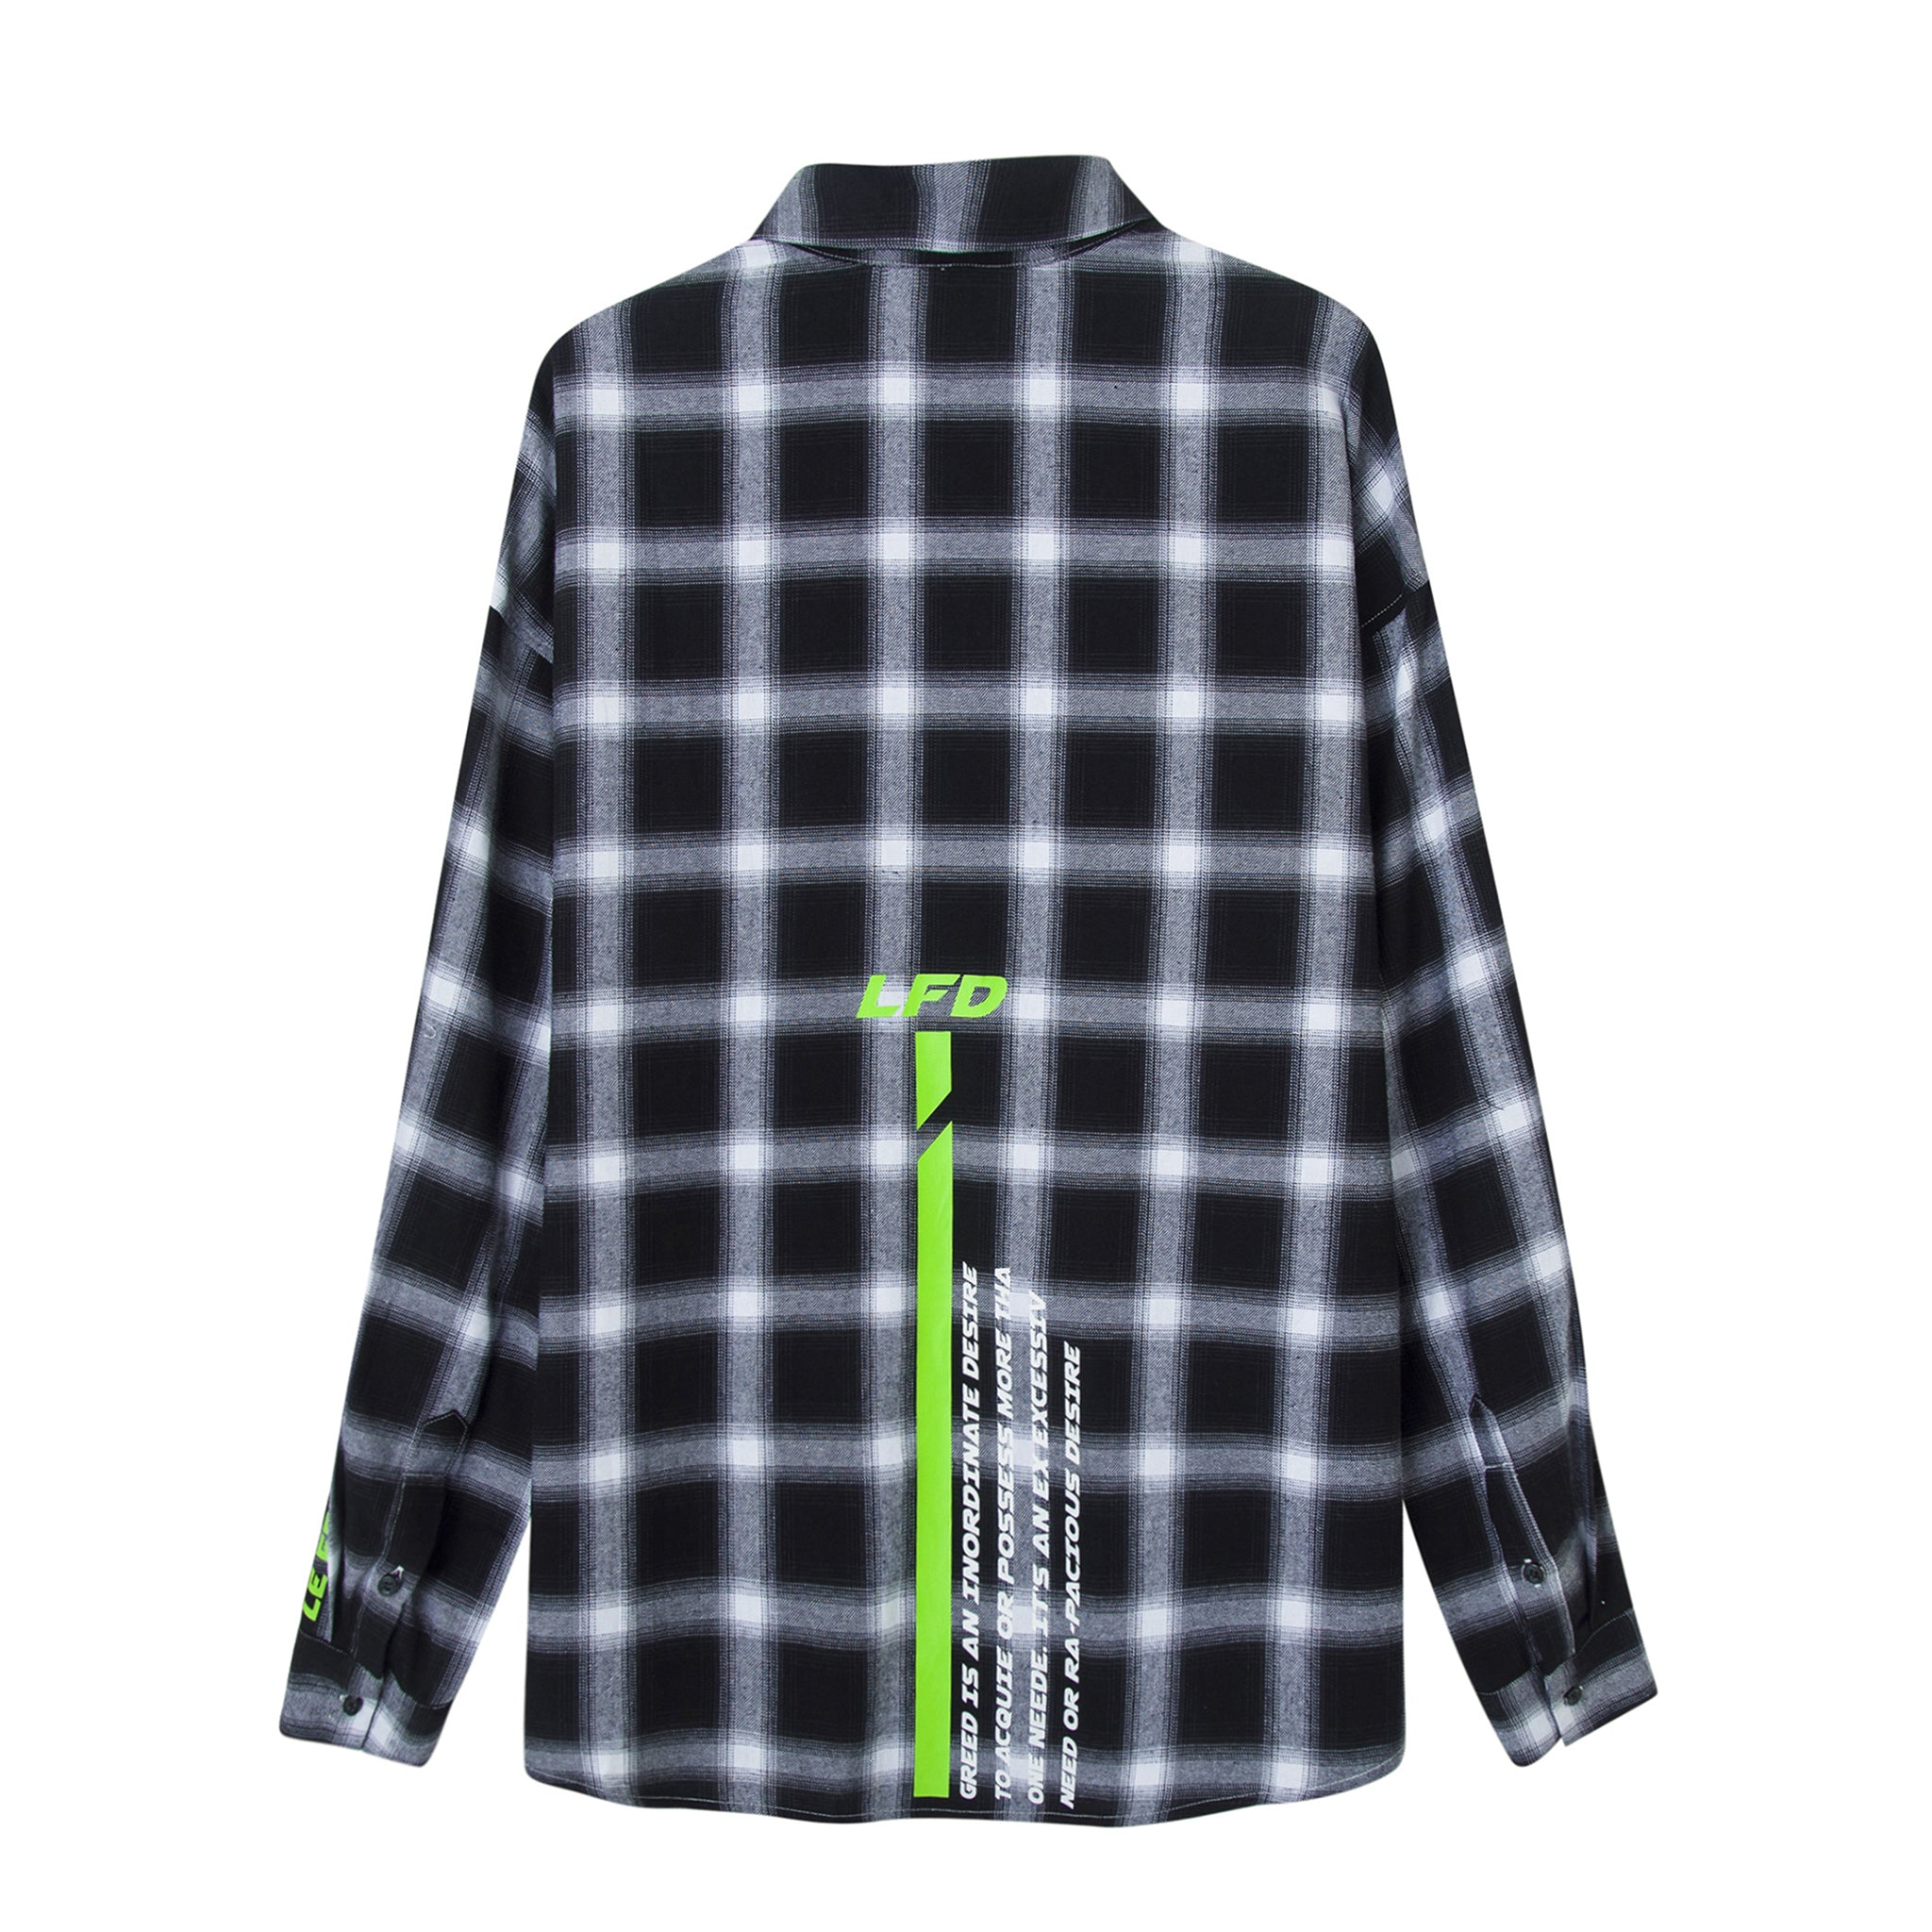 LFD Faze Check Shirt